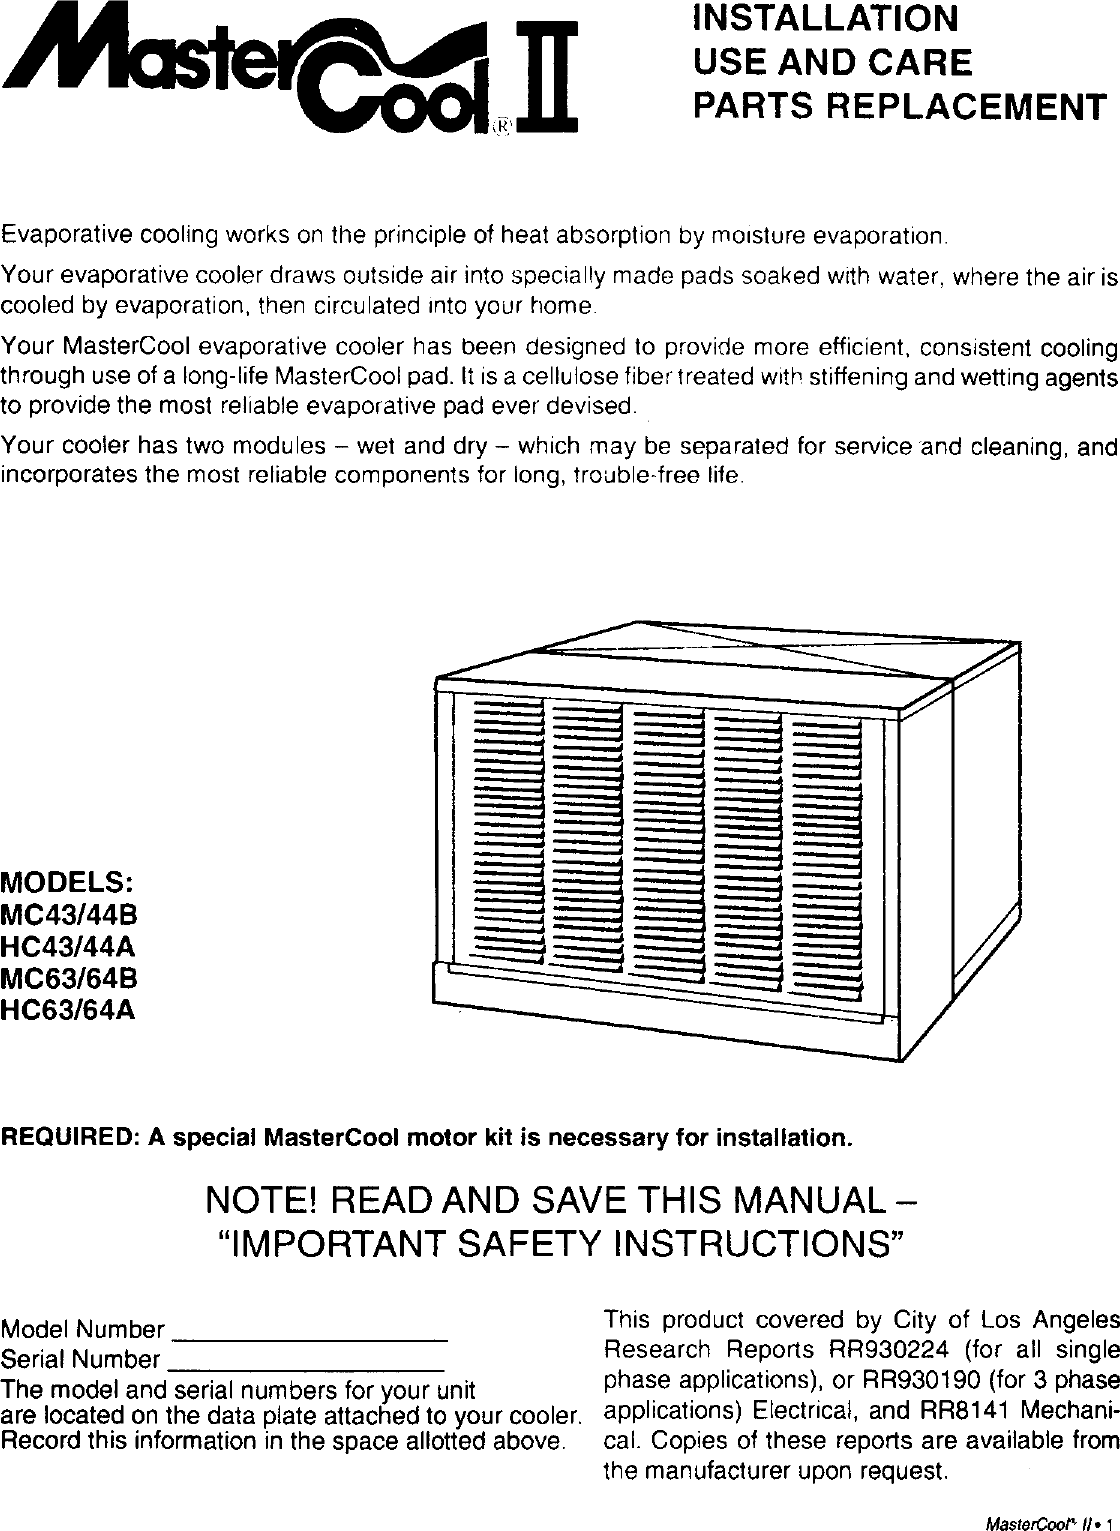 Download Mastercool Motor Wiring Diagram